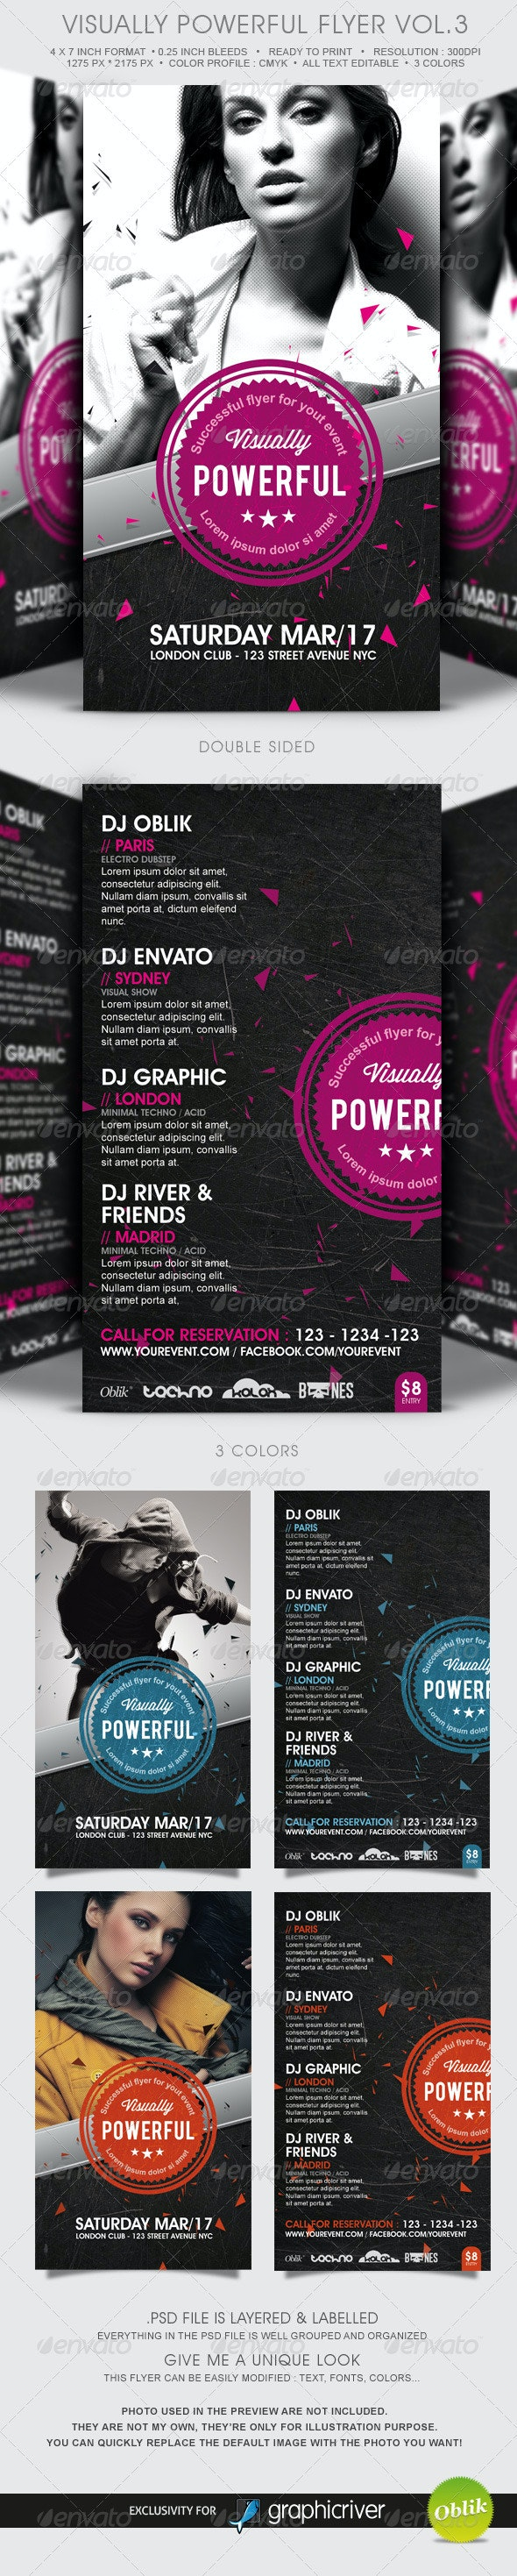 Visually Powerful Flyer Template Vol.3 - Clubs & Parties Events